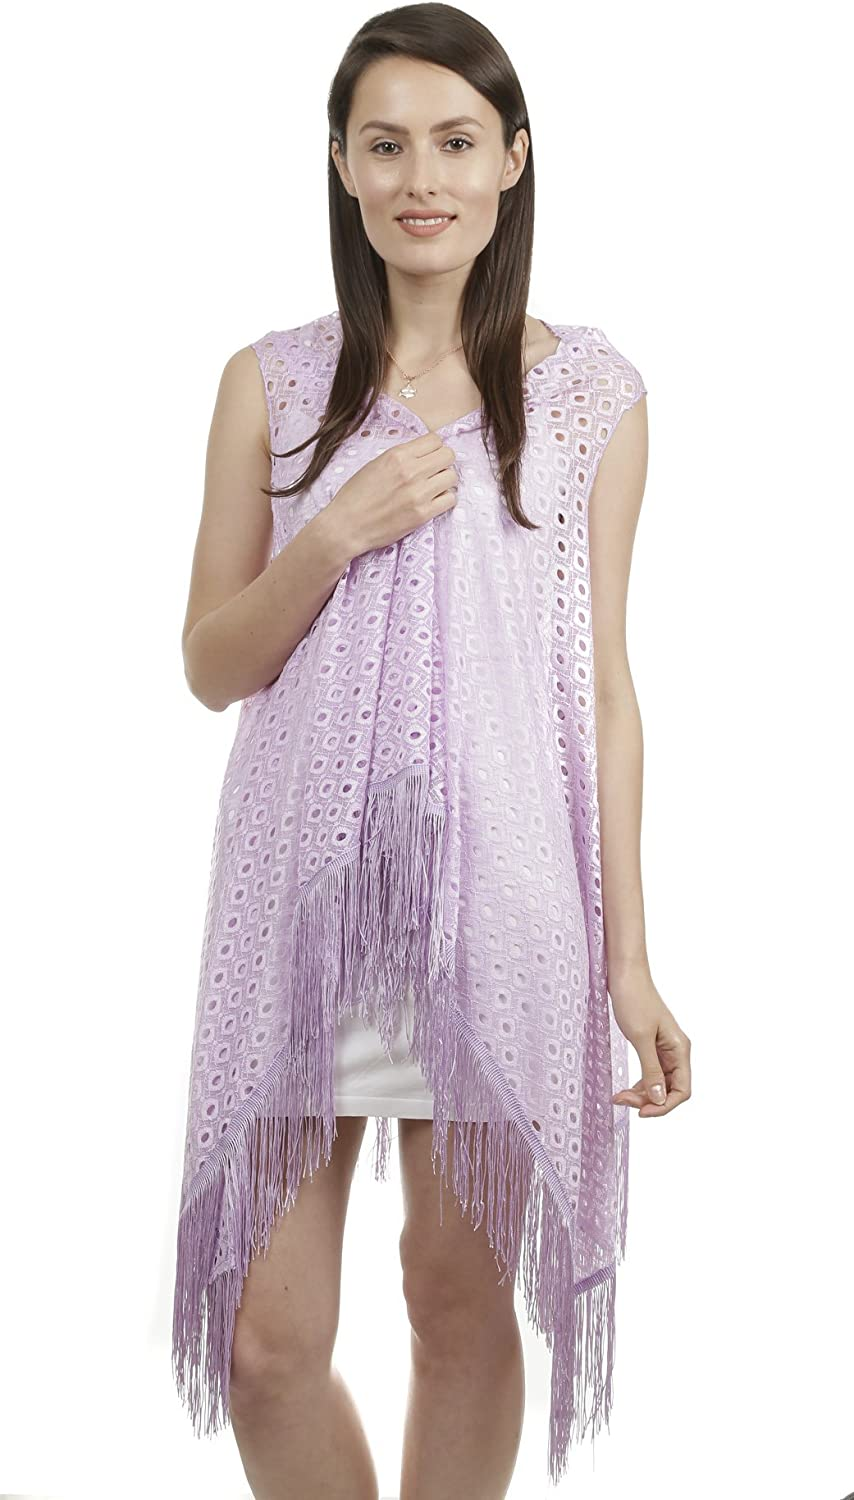 GILBIN'S Women's Assorted Colors Cut Out Fine Knit Shrug Cover Up with Fringes